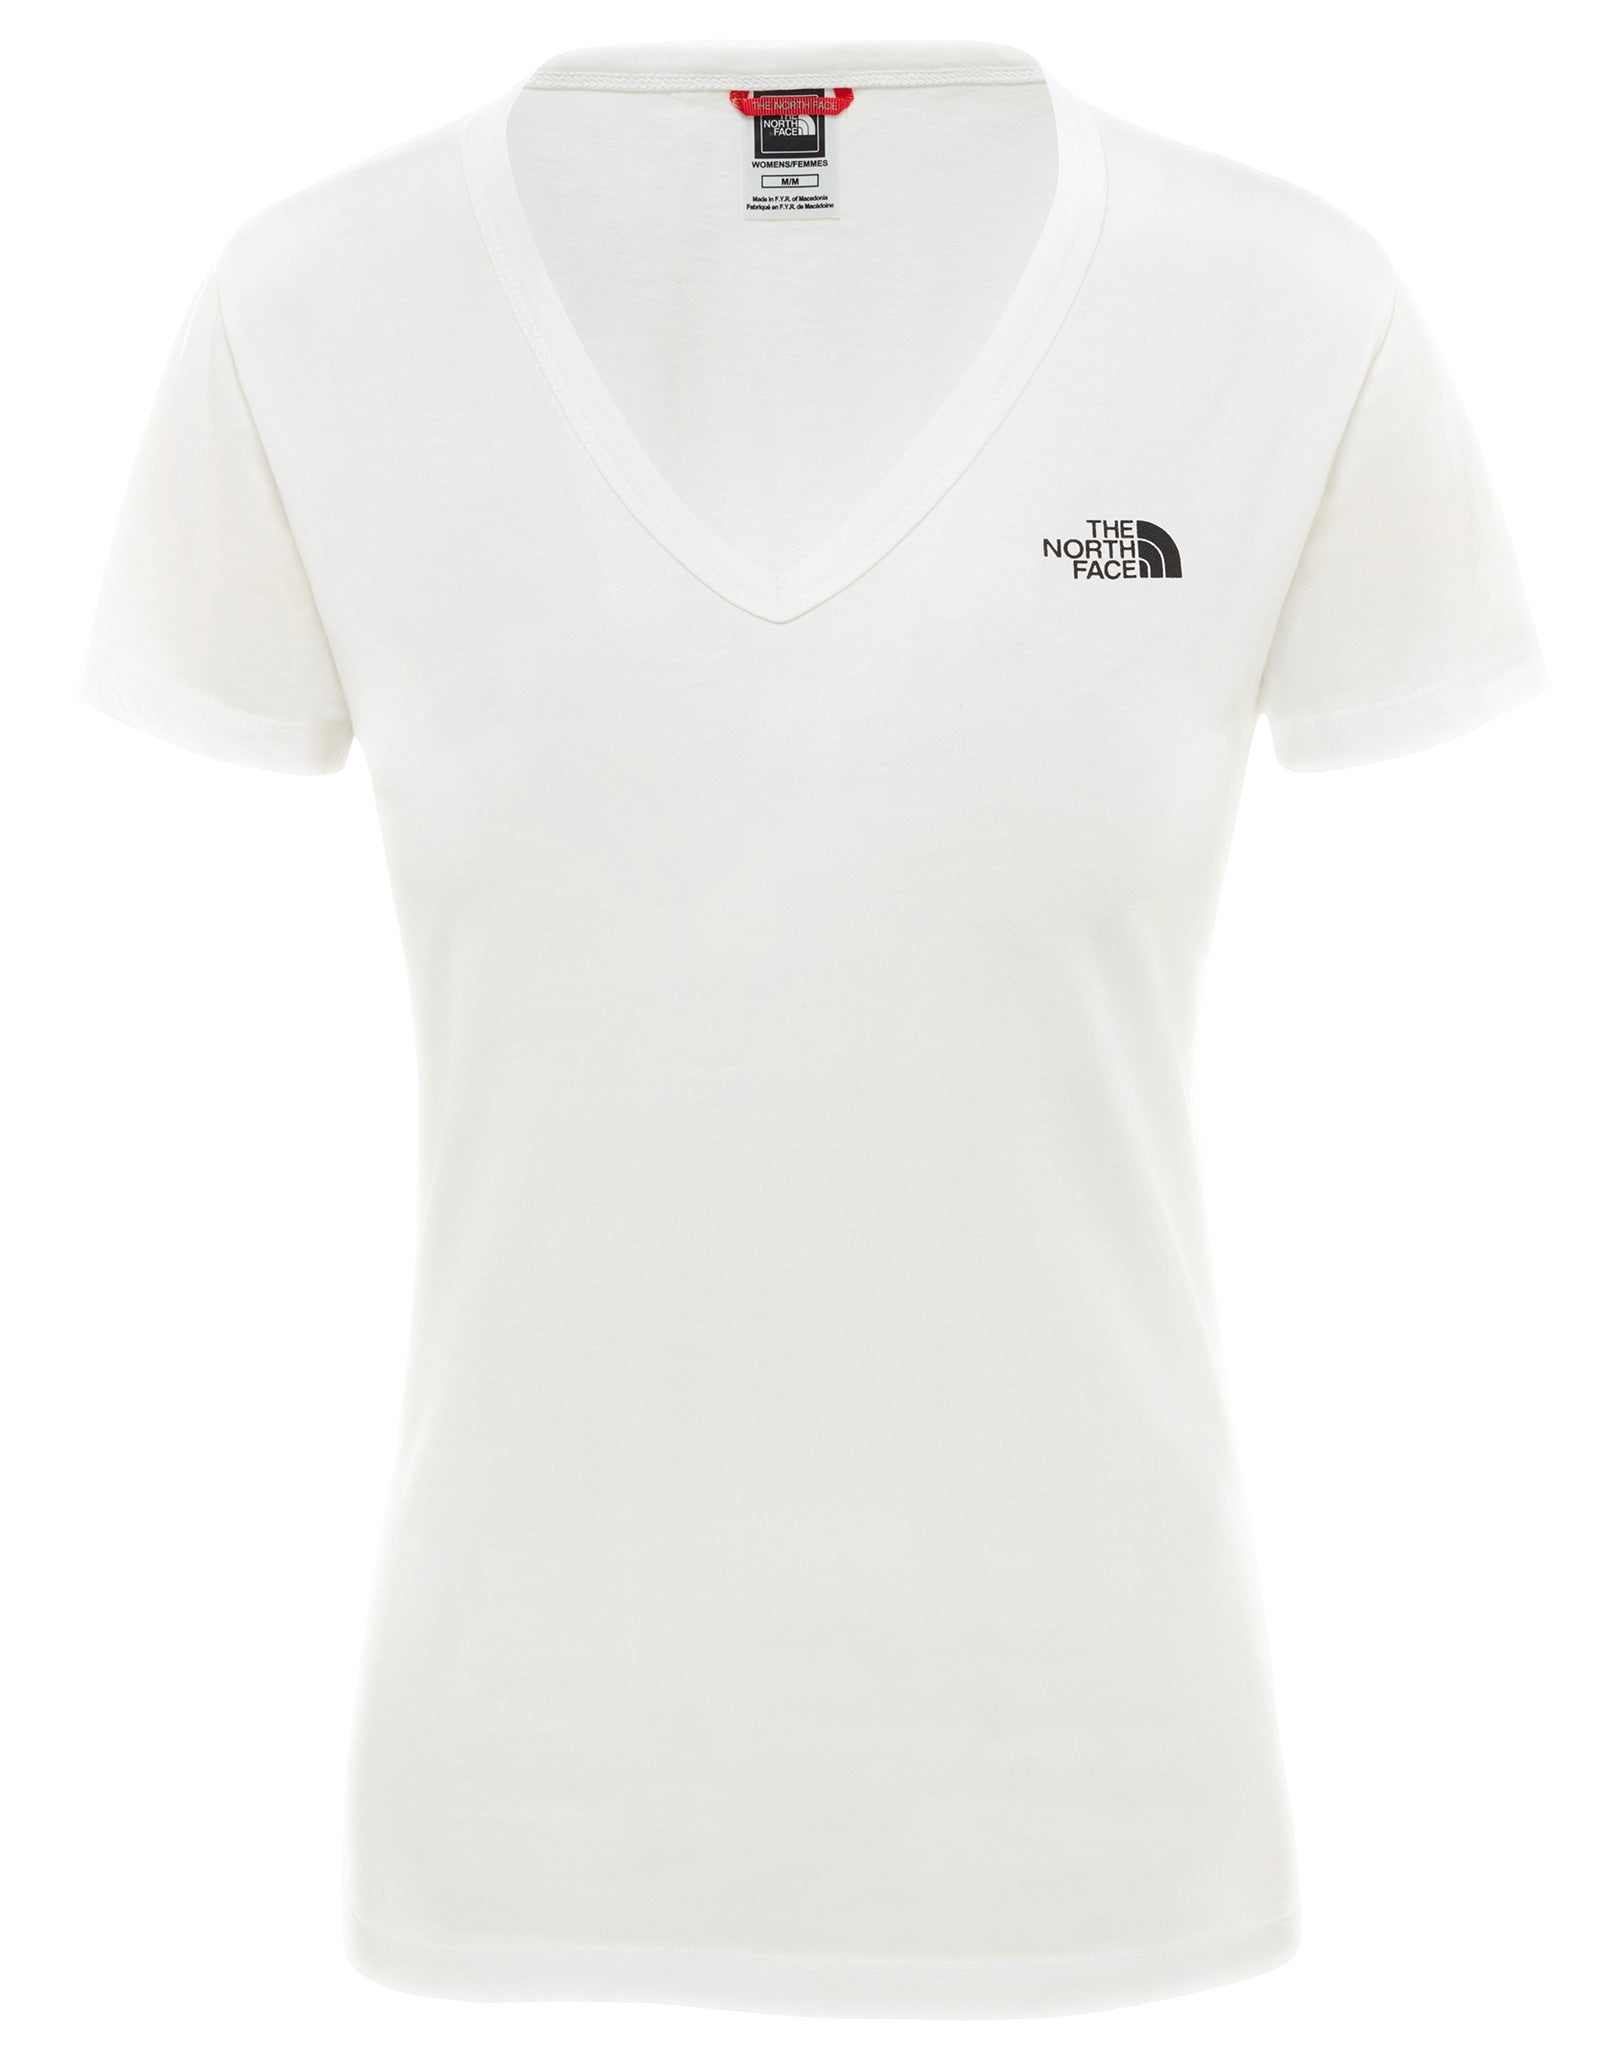 81c96eac The North Face Womens SS Simple Dome T Shirt - TNF White | Simply ...